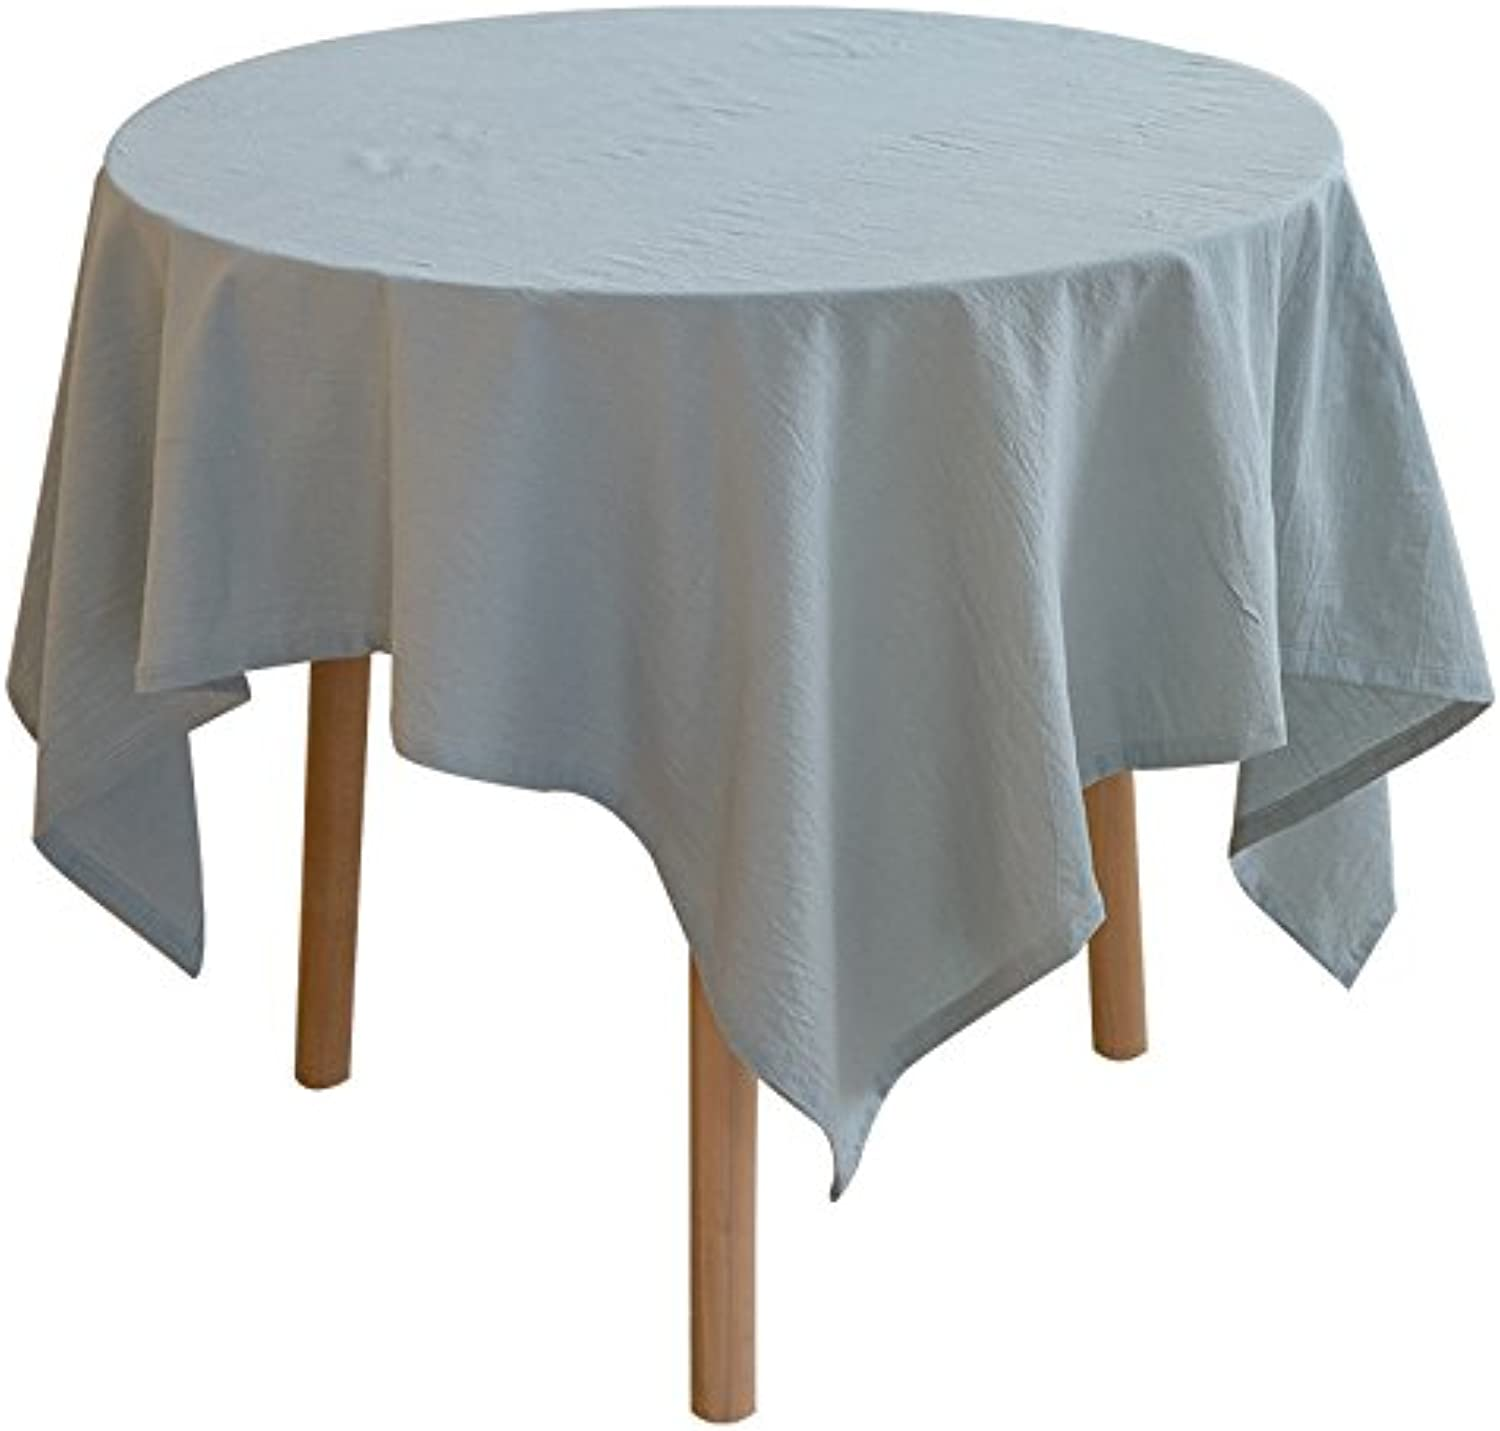 Creek Ywh Japanese plain tablecloth fabric cotton and linen small fresh table cloth round tablecloth tablecloth tablecloth rectangular, light green, 100140cm